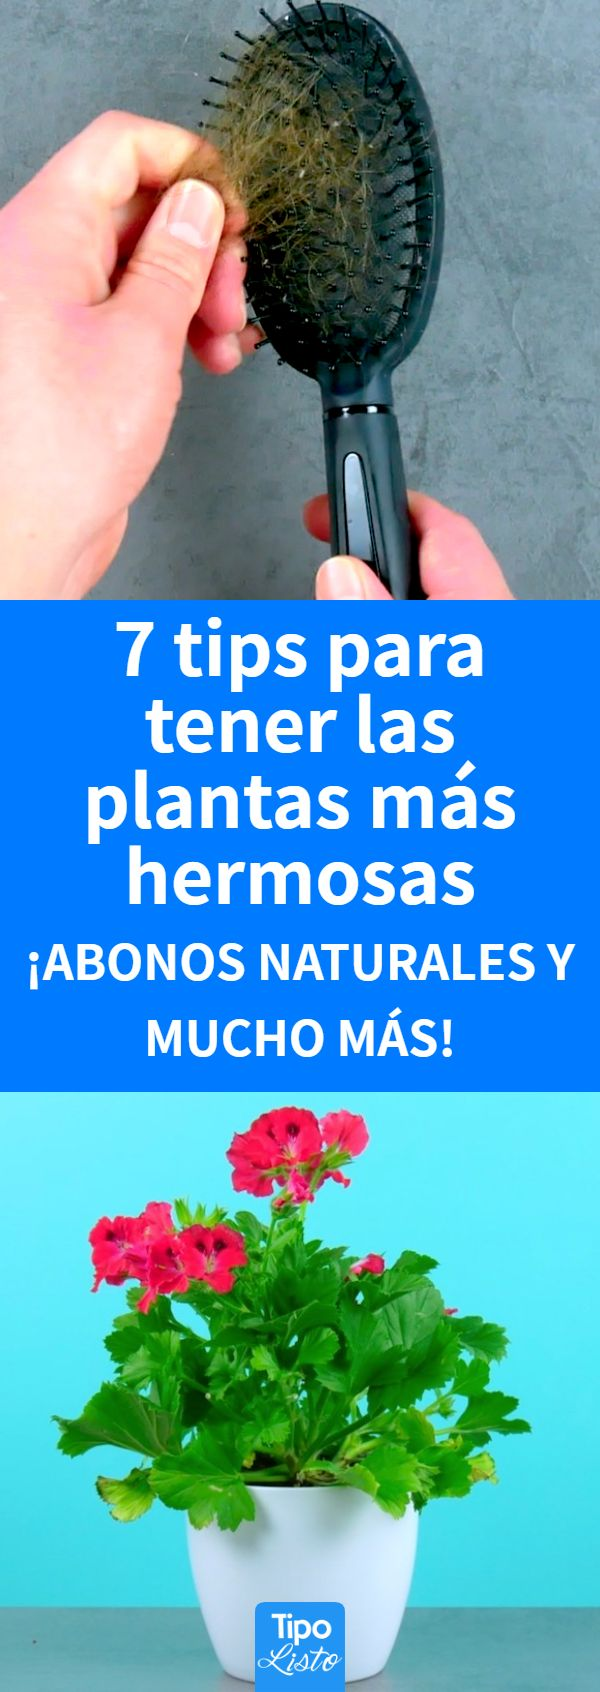 House Plants Decor, Plant Decor, Things To Fo, Mystic Garden, Pitaya, Plant Care, Indoor Plants, Gardening Tips, Cactus